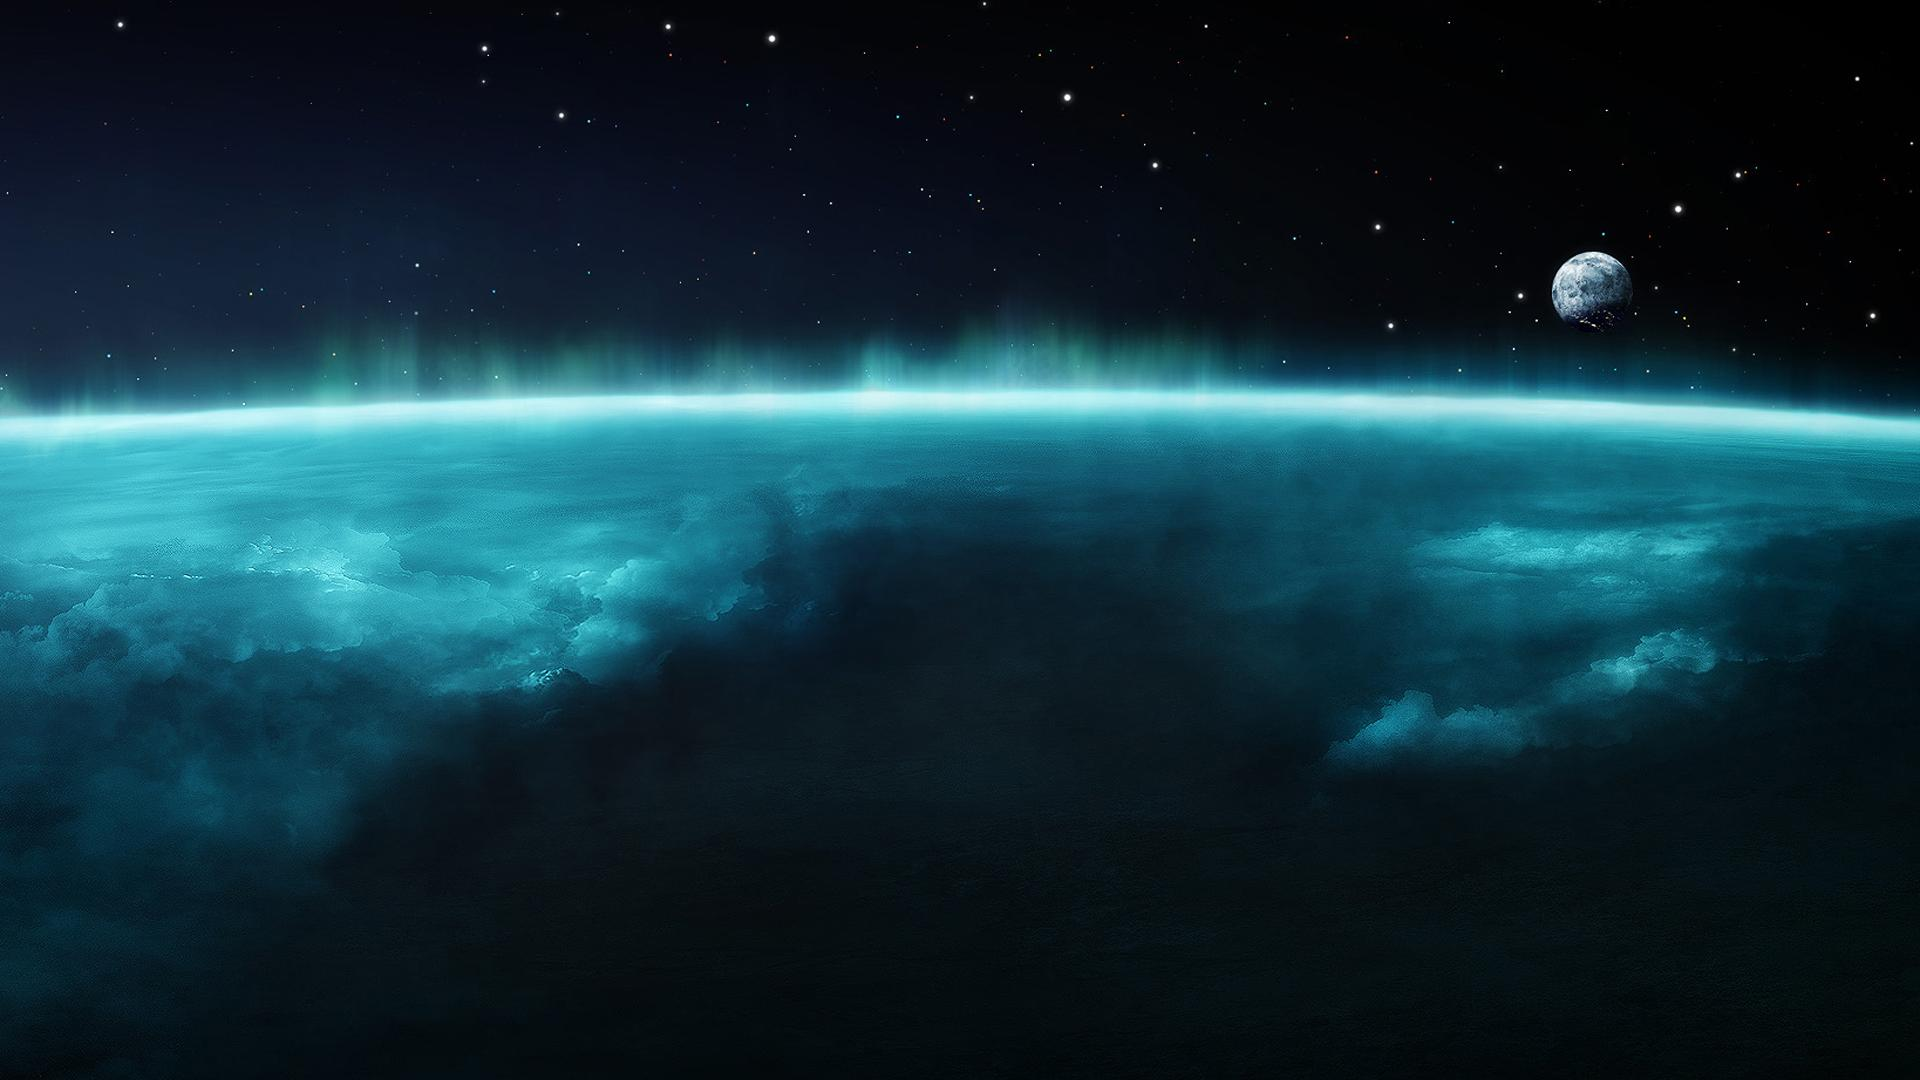 6 Awesome Cosmos Inspired Hd Wallpapers: [48+] Cosmo Wallpaper On WallpaperSafari